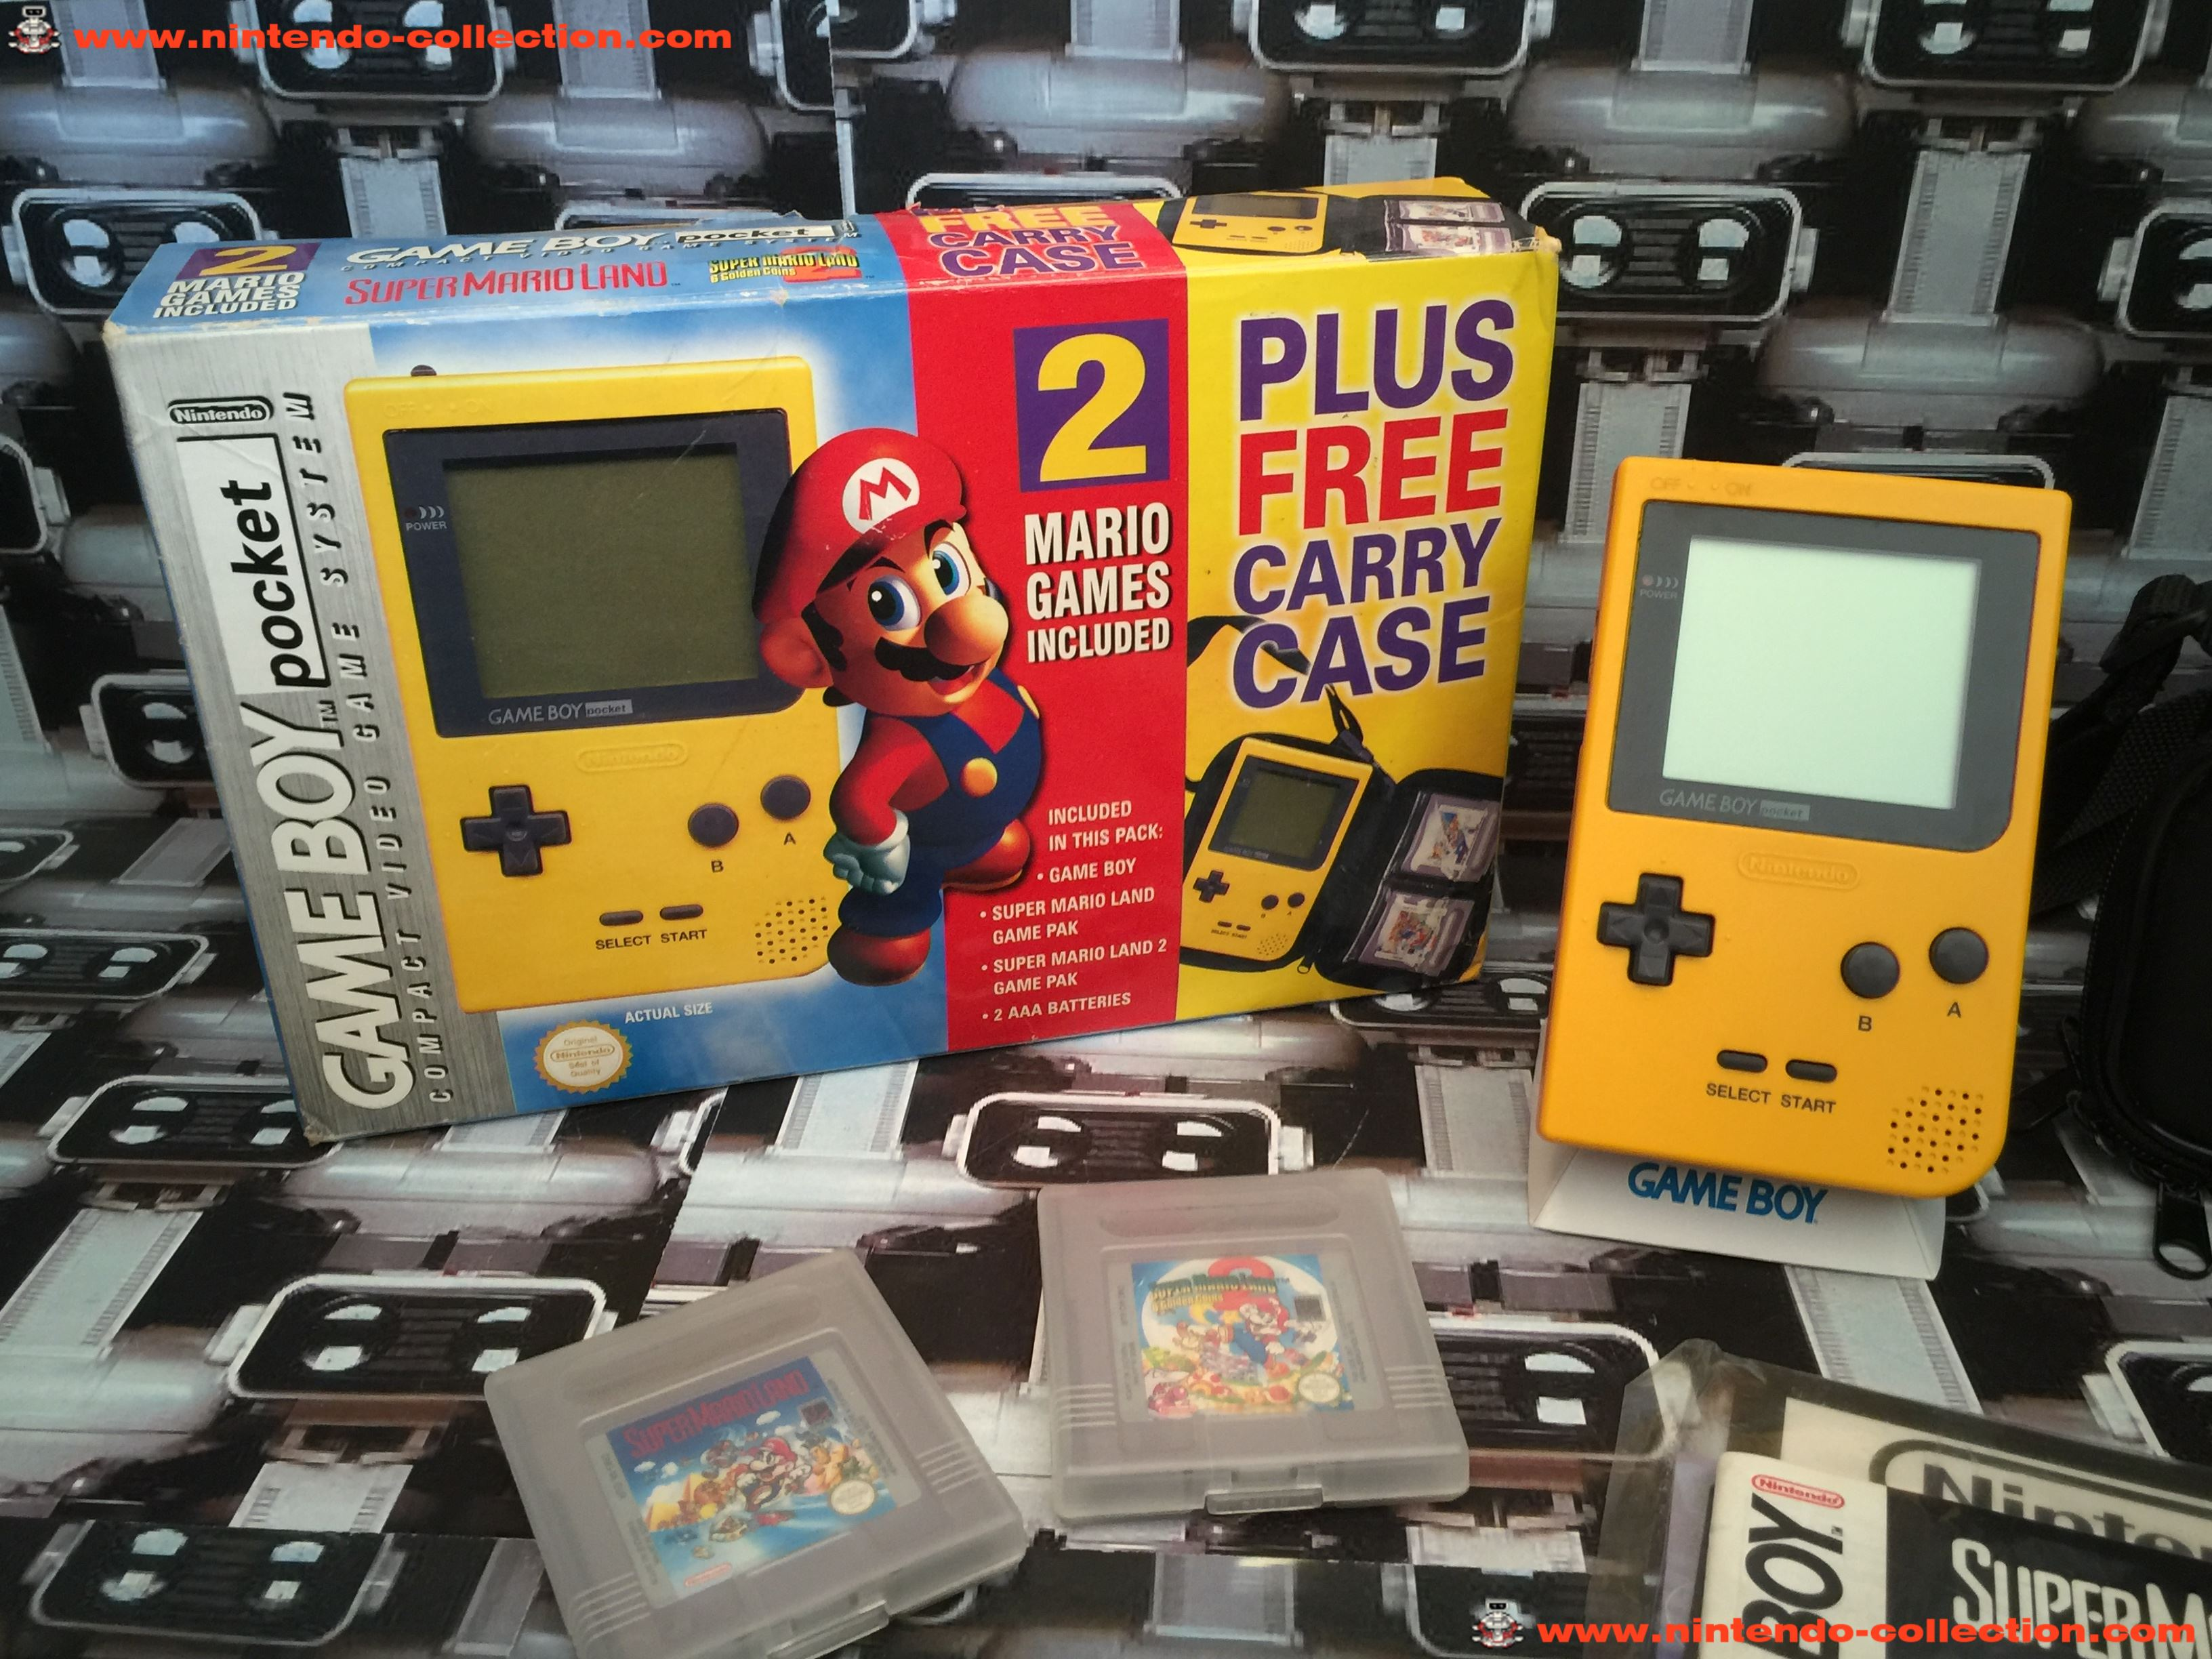 www.nintendo-collection.com - Gameboy Yellow jaune Pack Mario UK version united Kingdom - 02